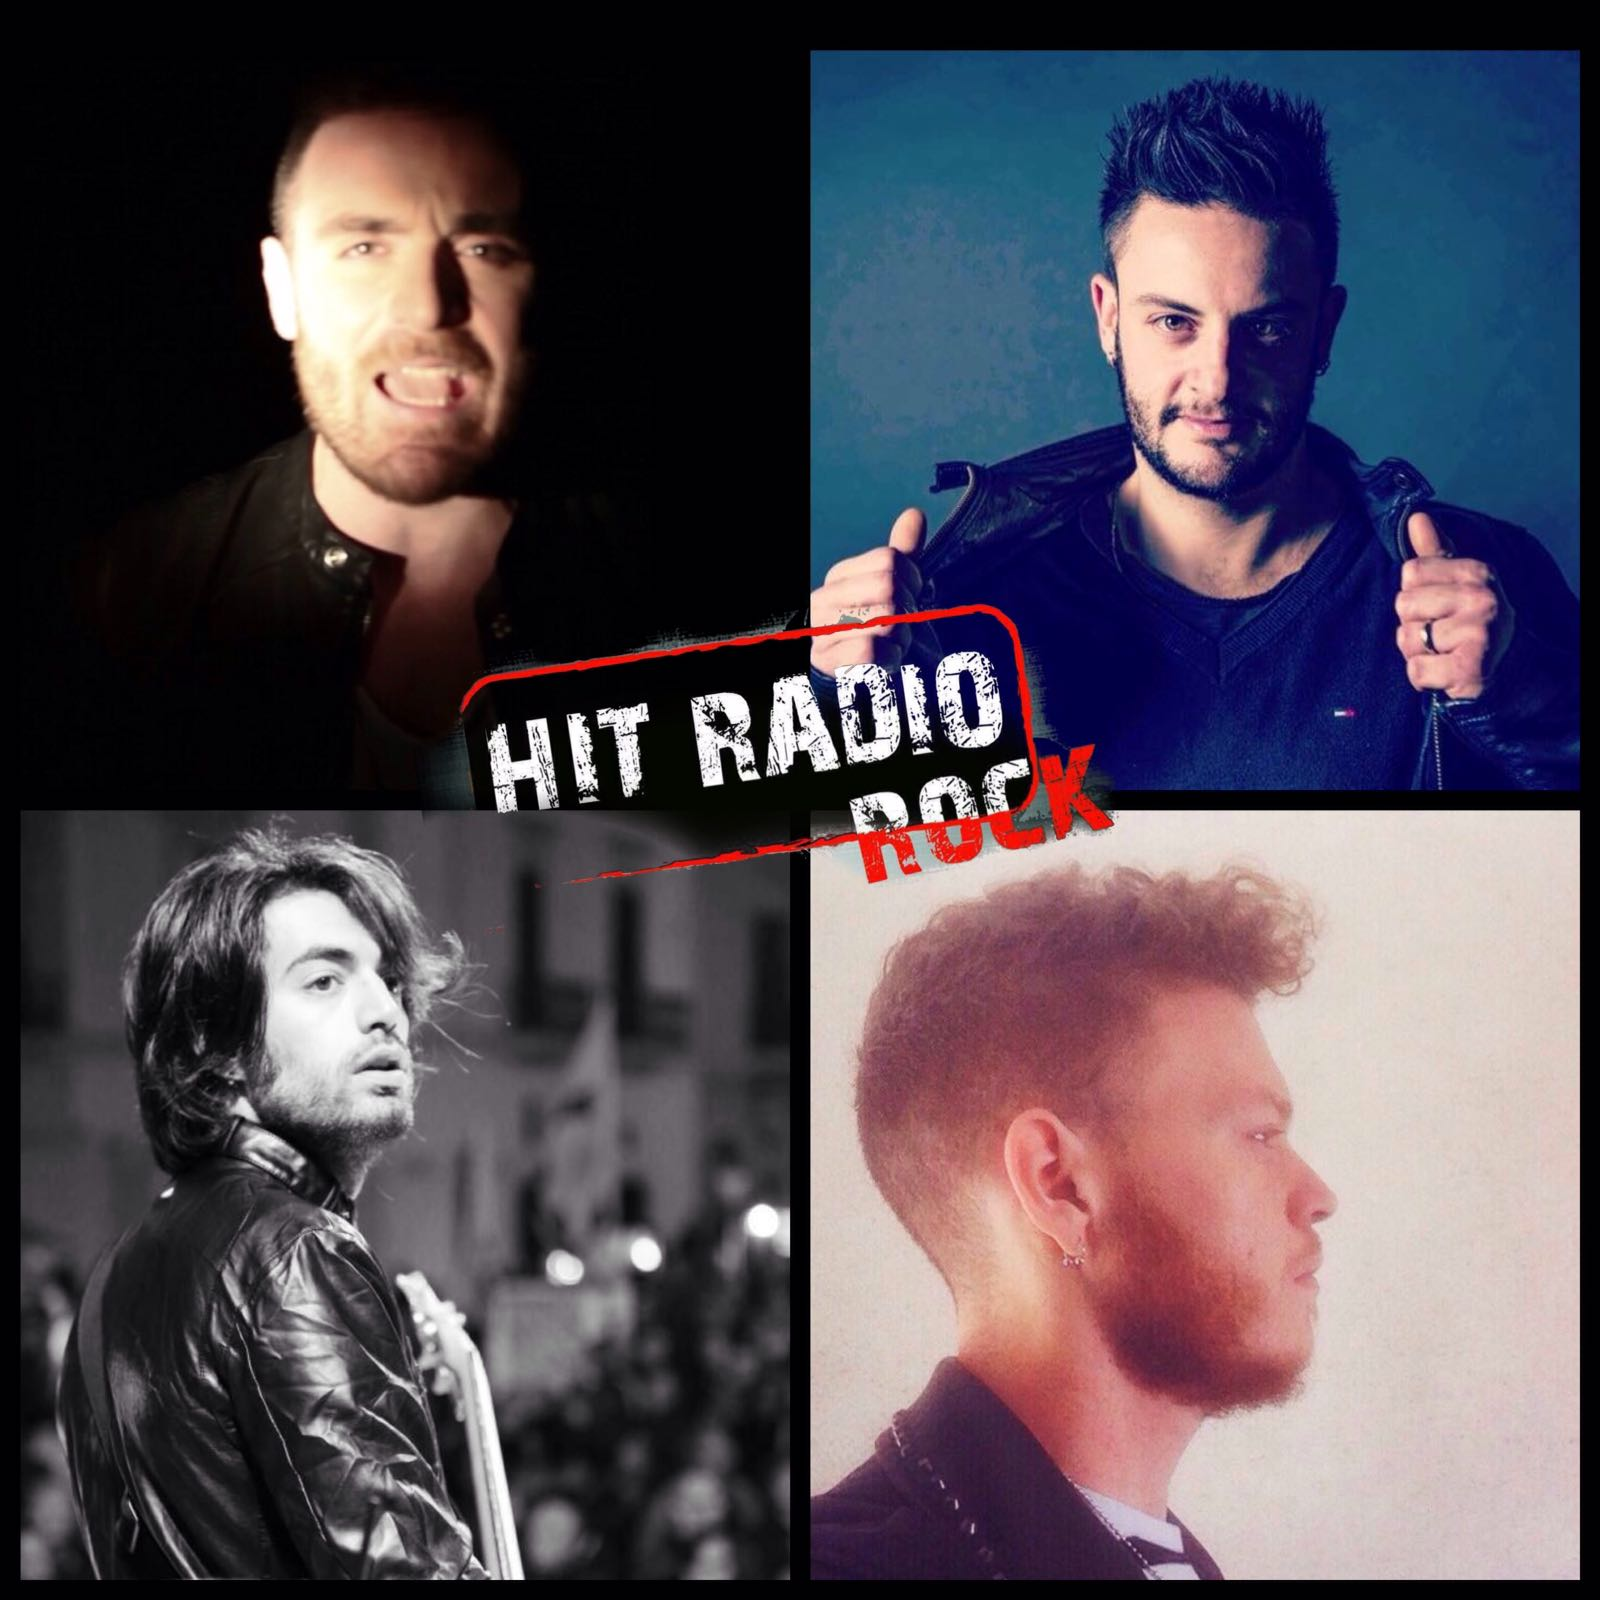 Hit radio rock